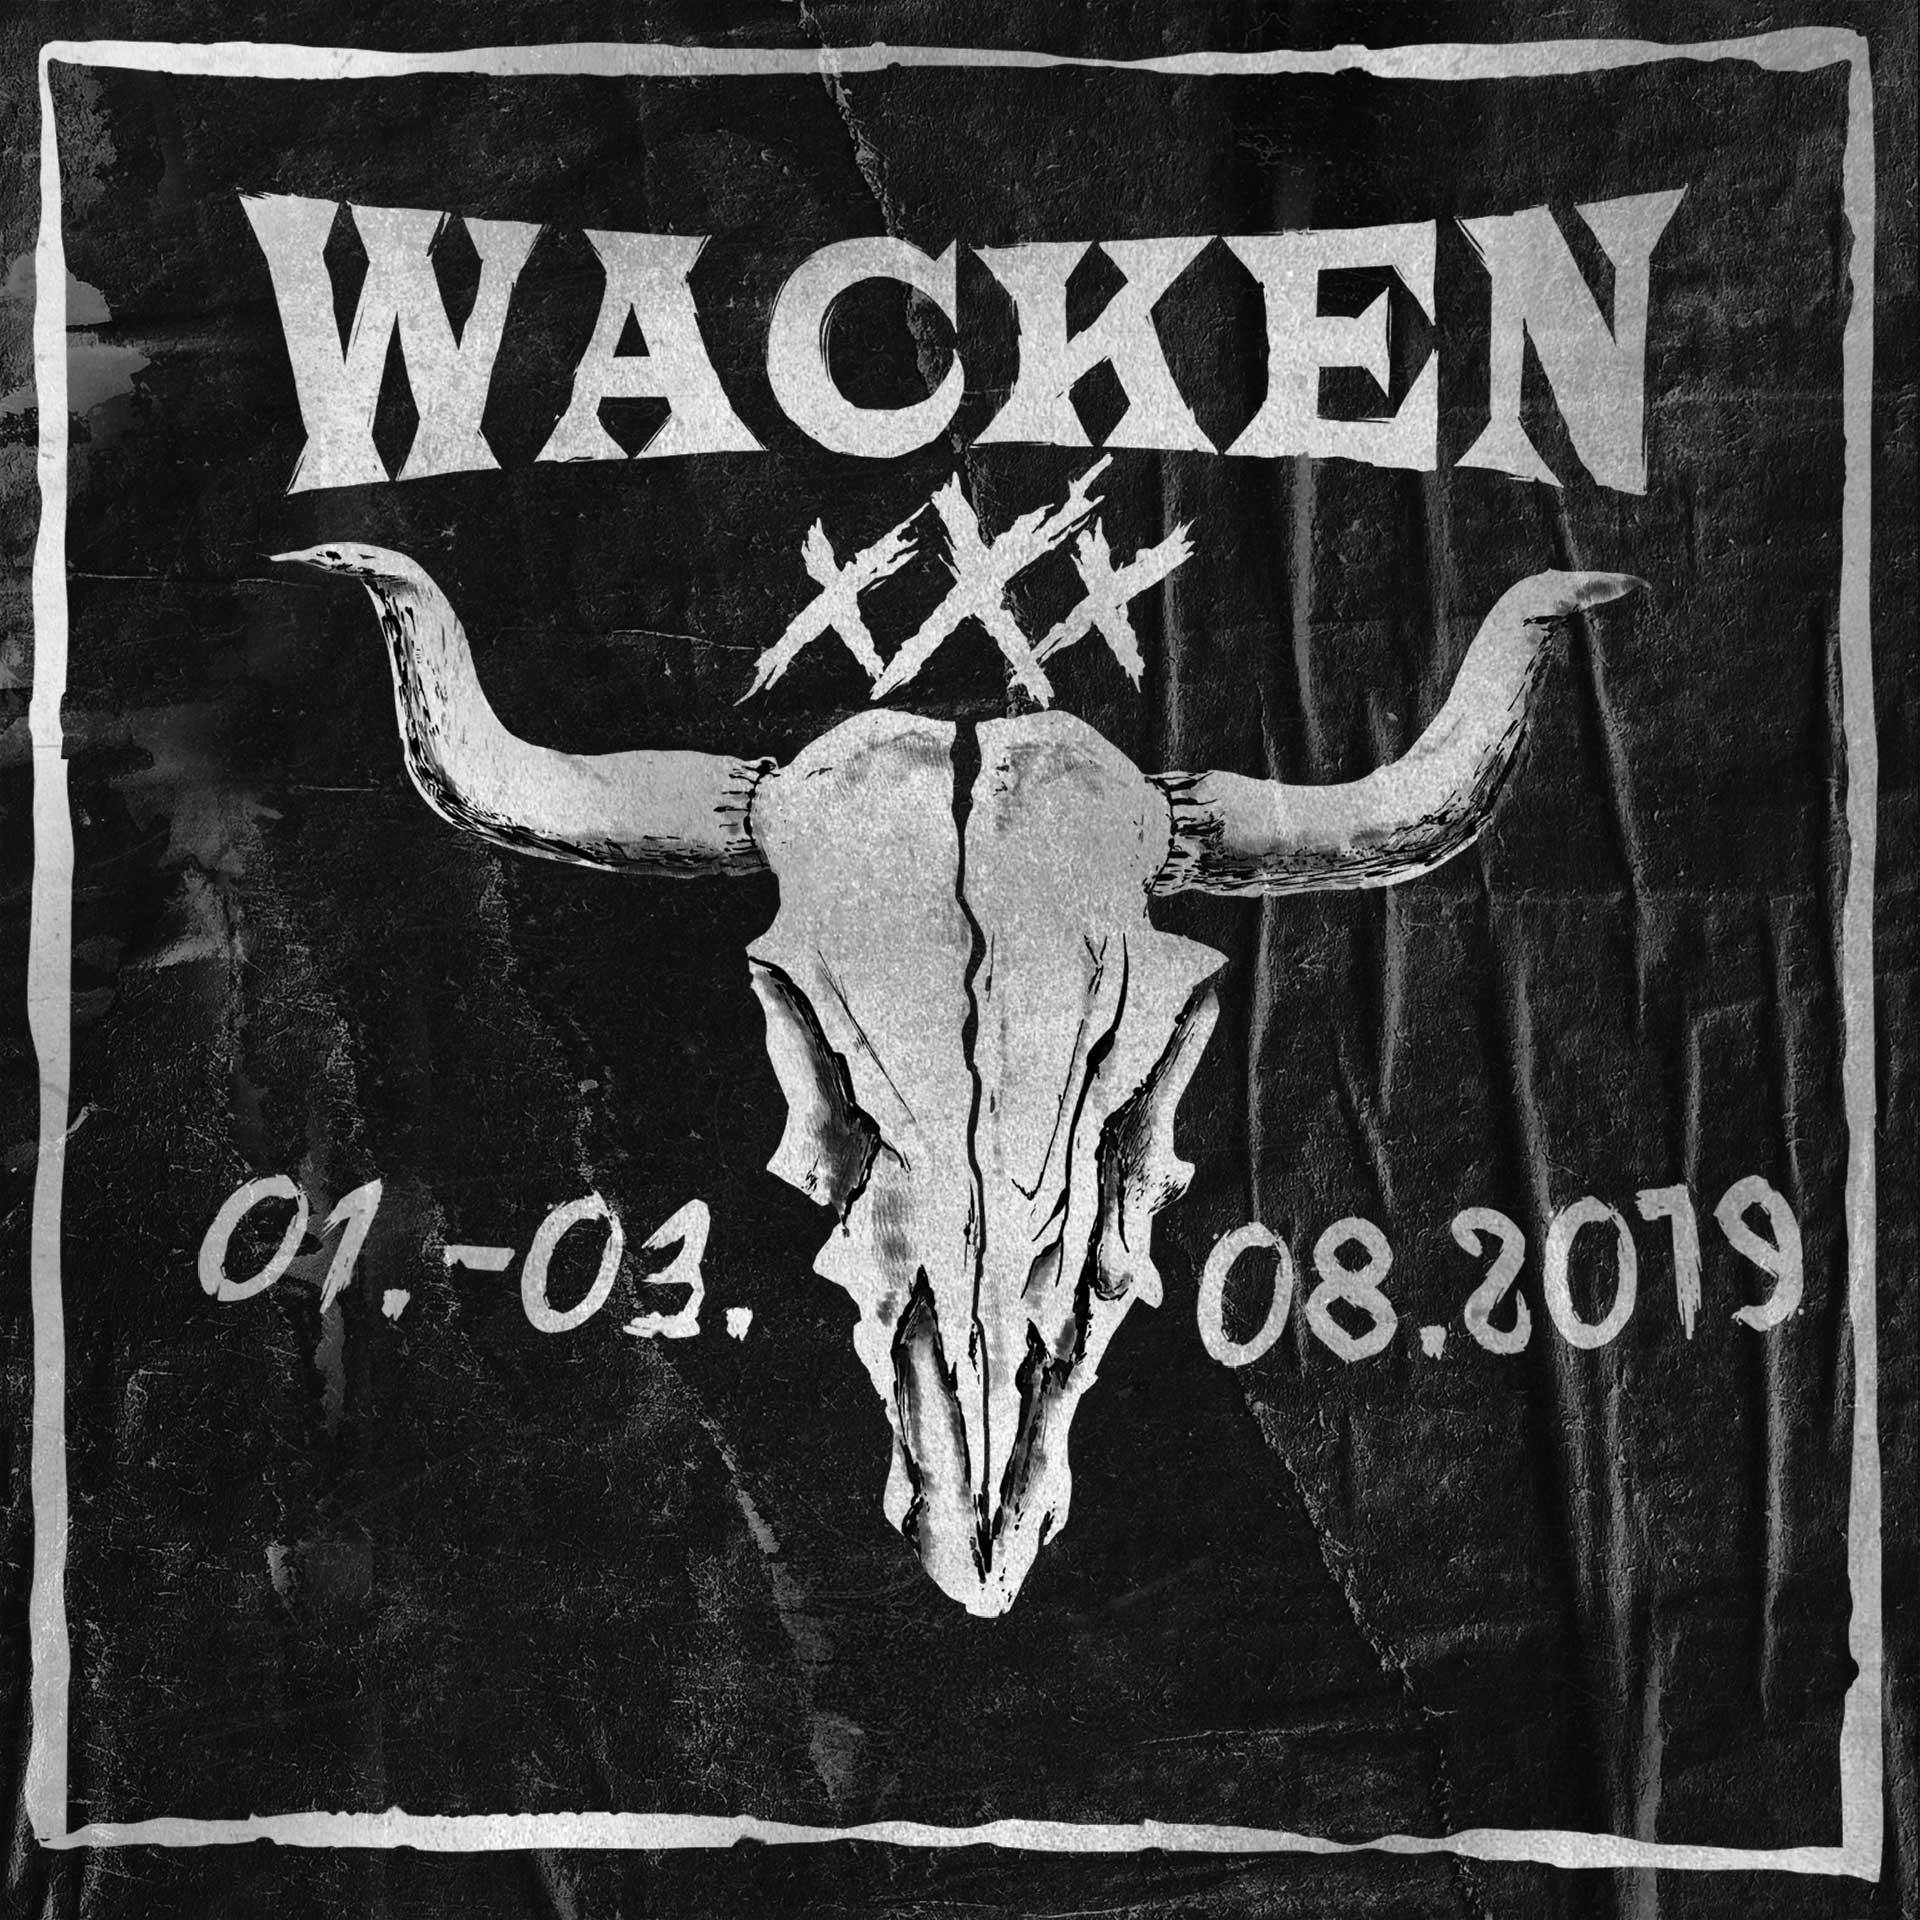 Wacken Tickets 2019